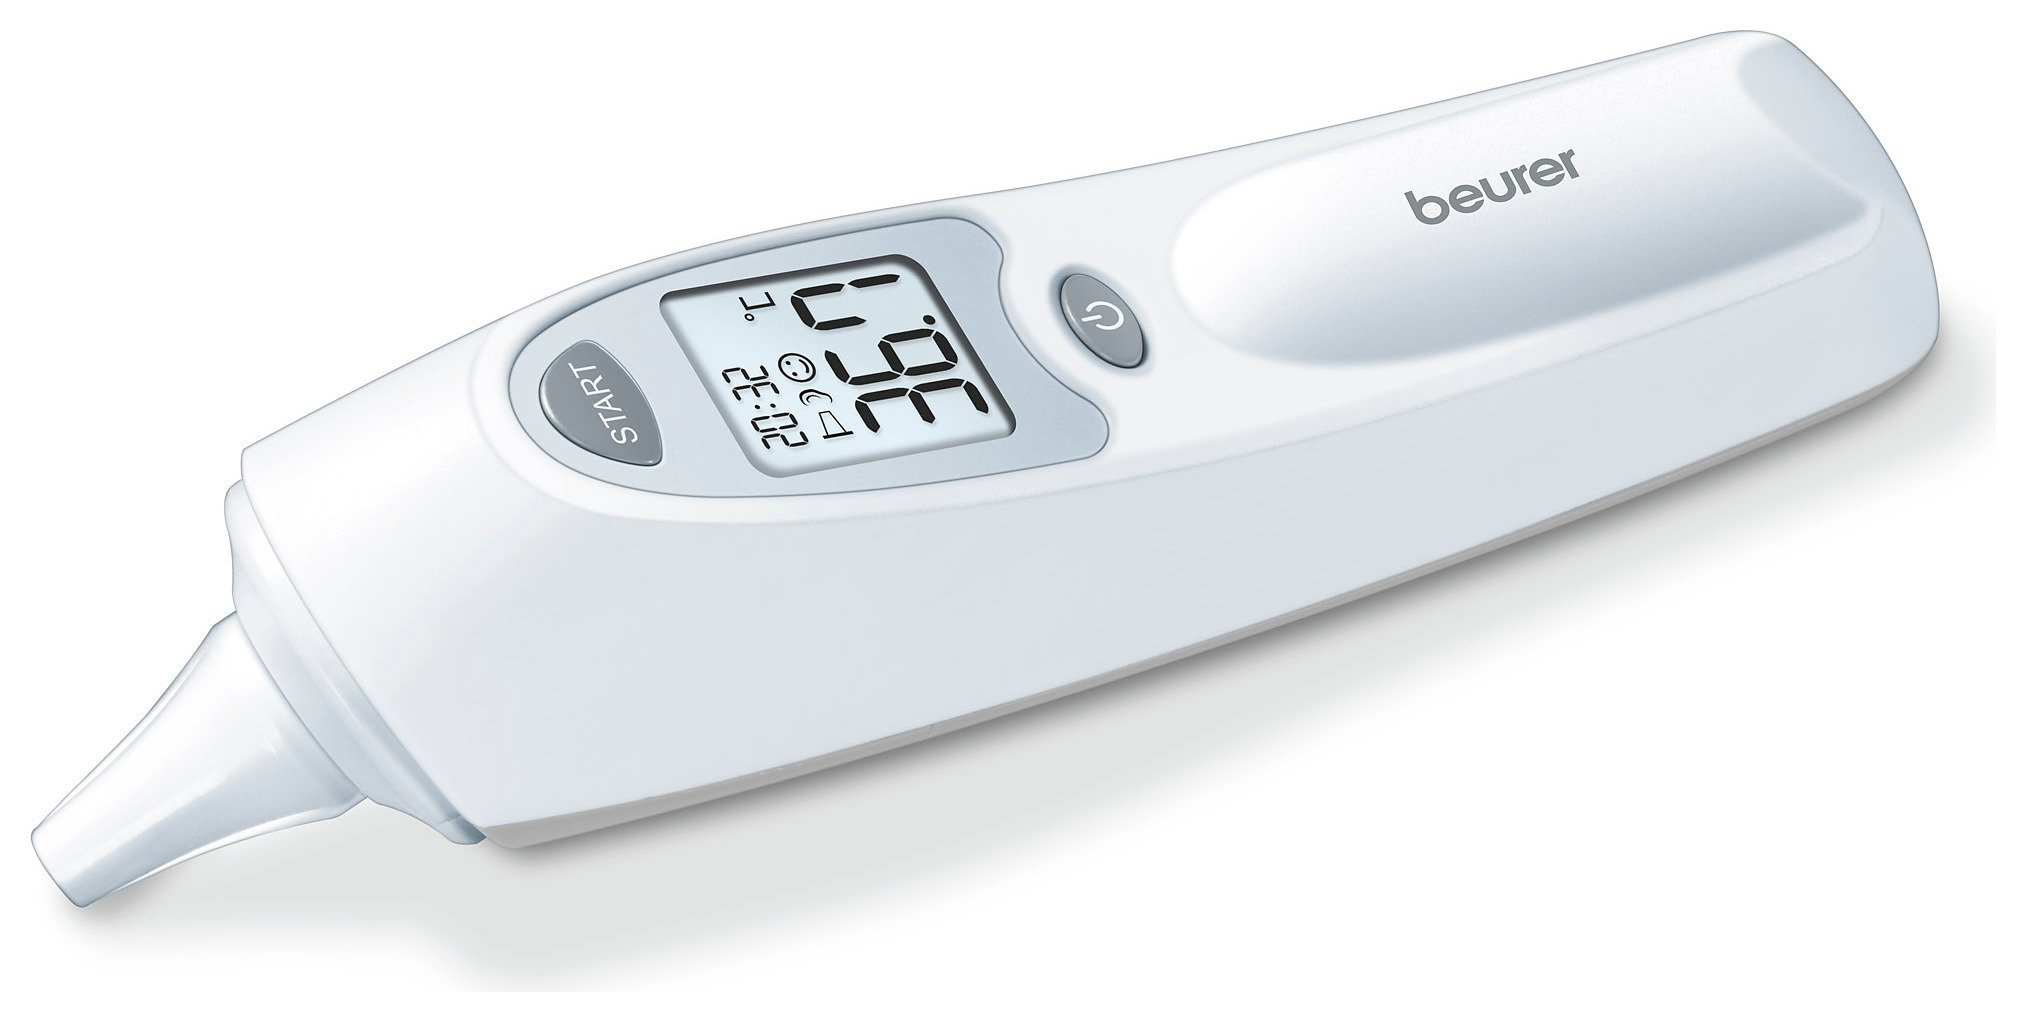 Beurer FT58 Ear Thermometer.